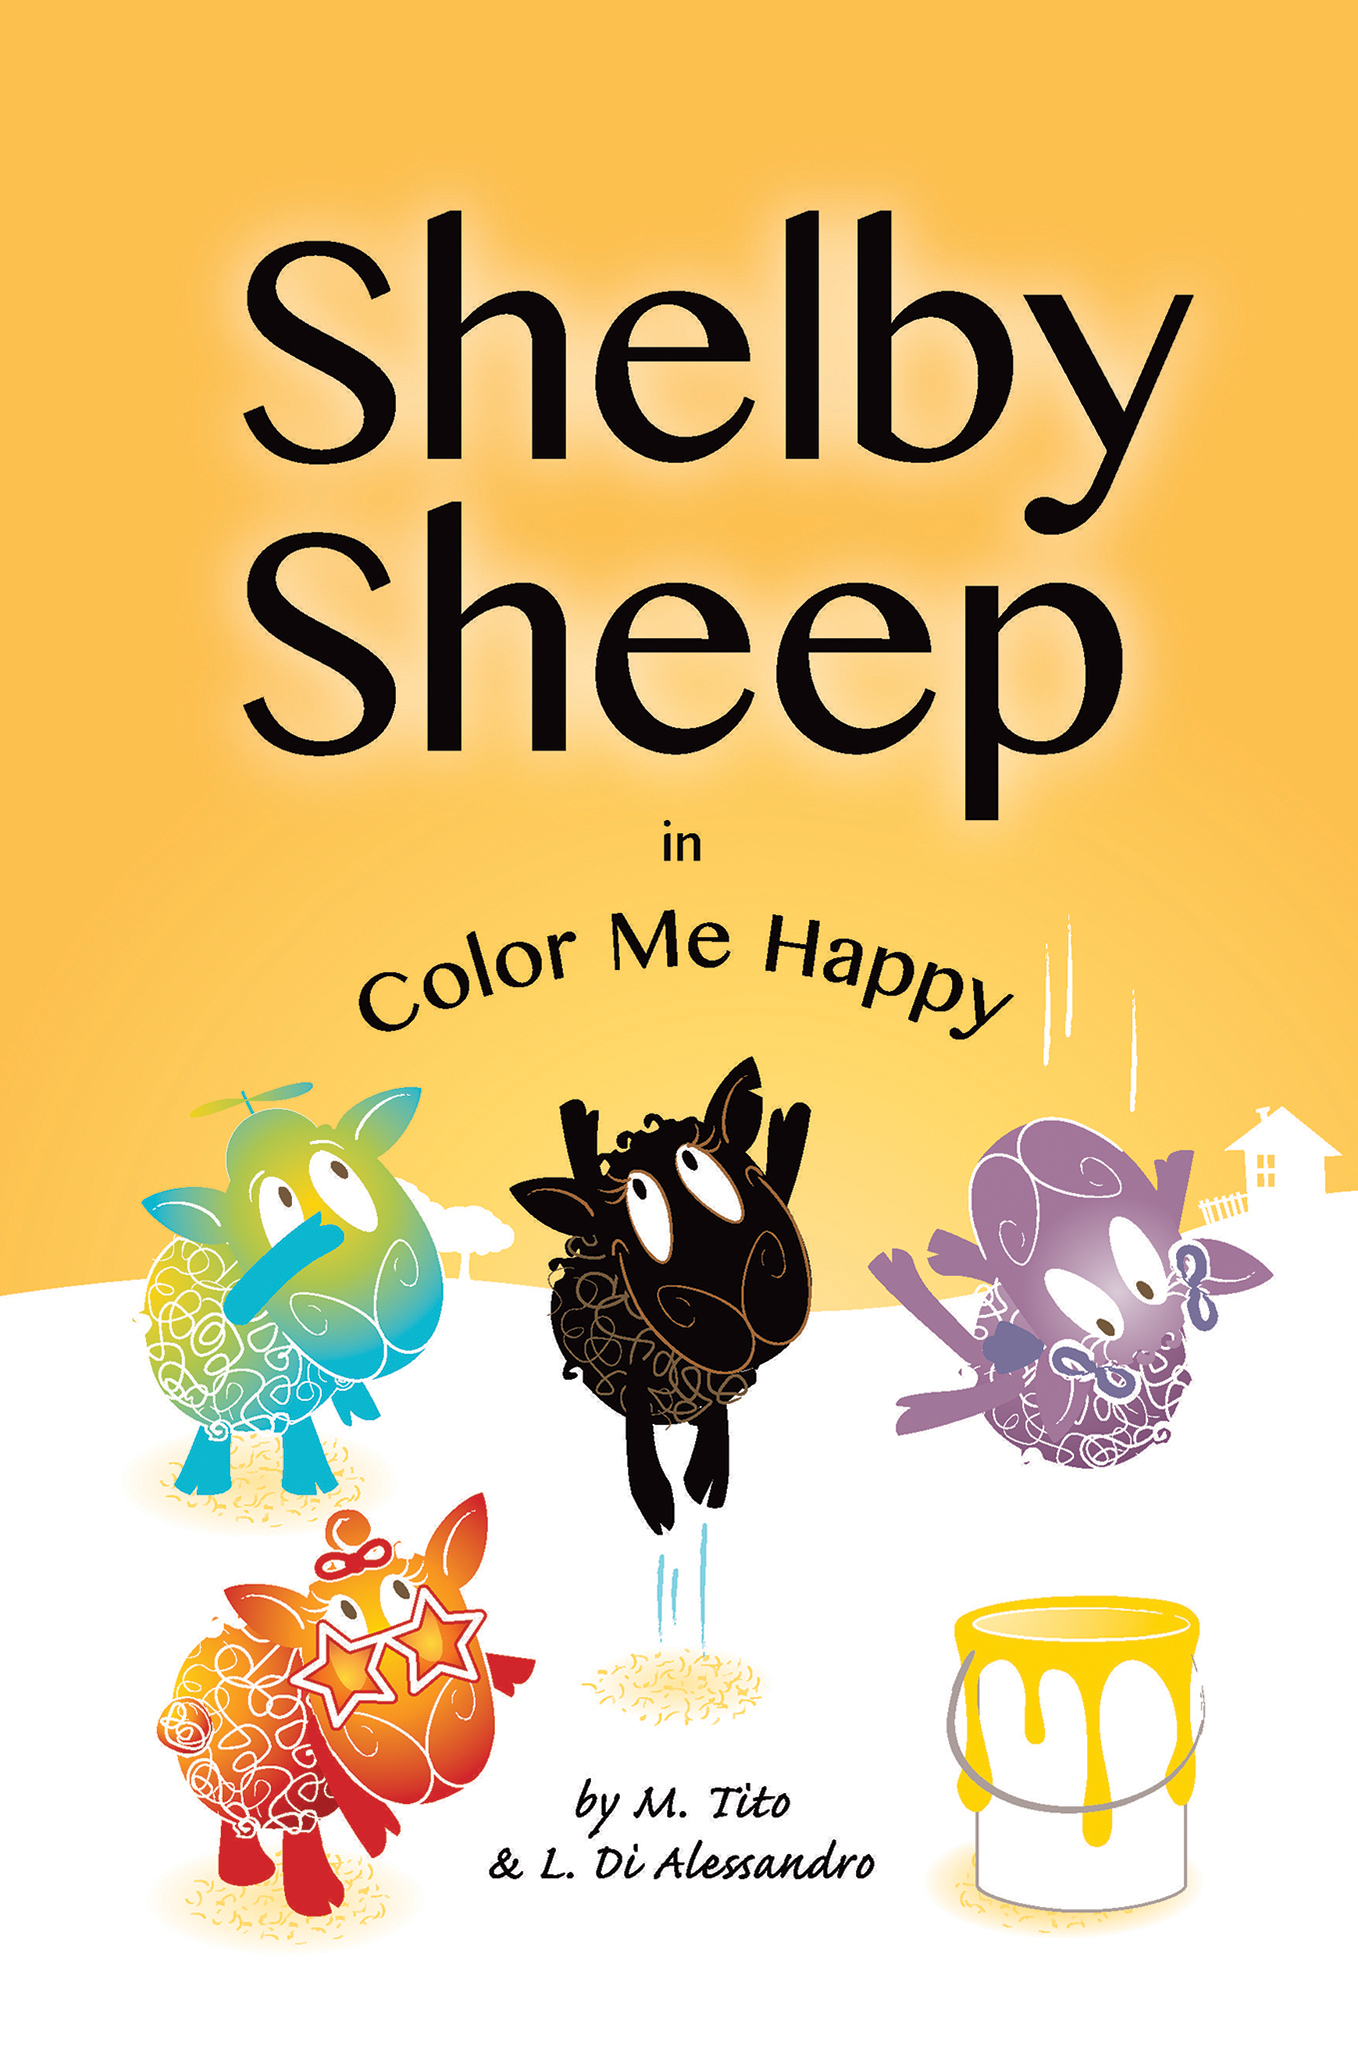 ShelbySheep_ColorMeHappy_ISBN_978-1-940692-19-7_IngramPrint.jpg